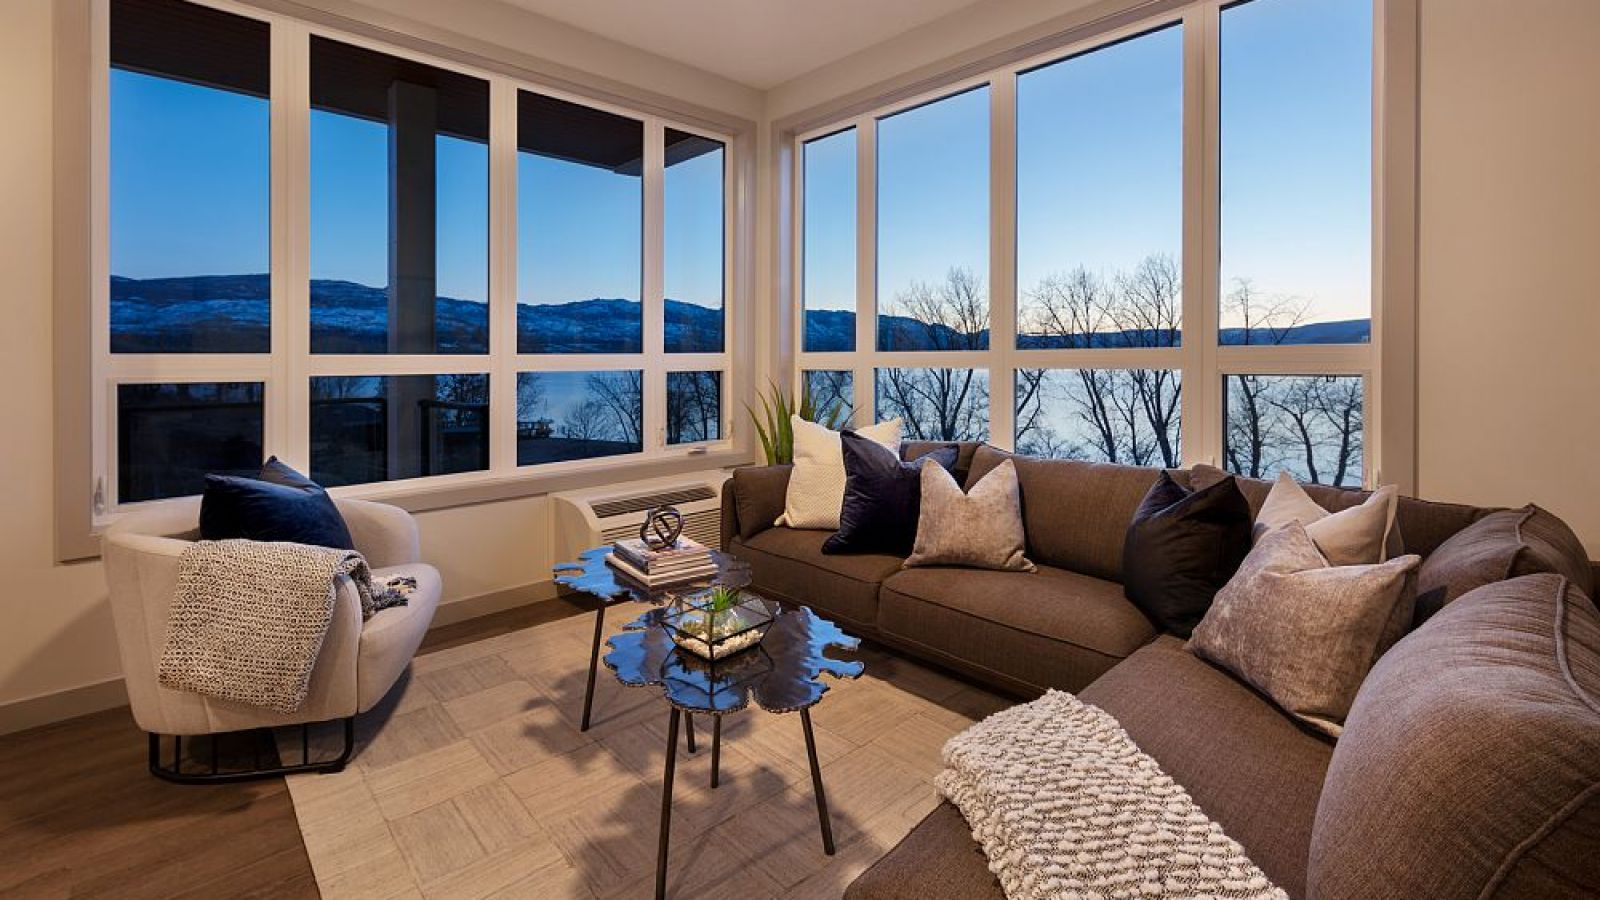 The Shore - Kelowna condo suites by Lake Okanagan